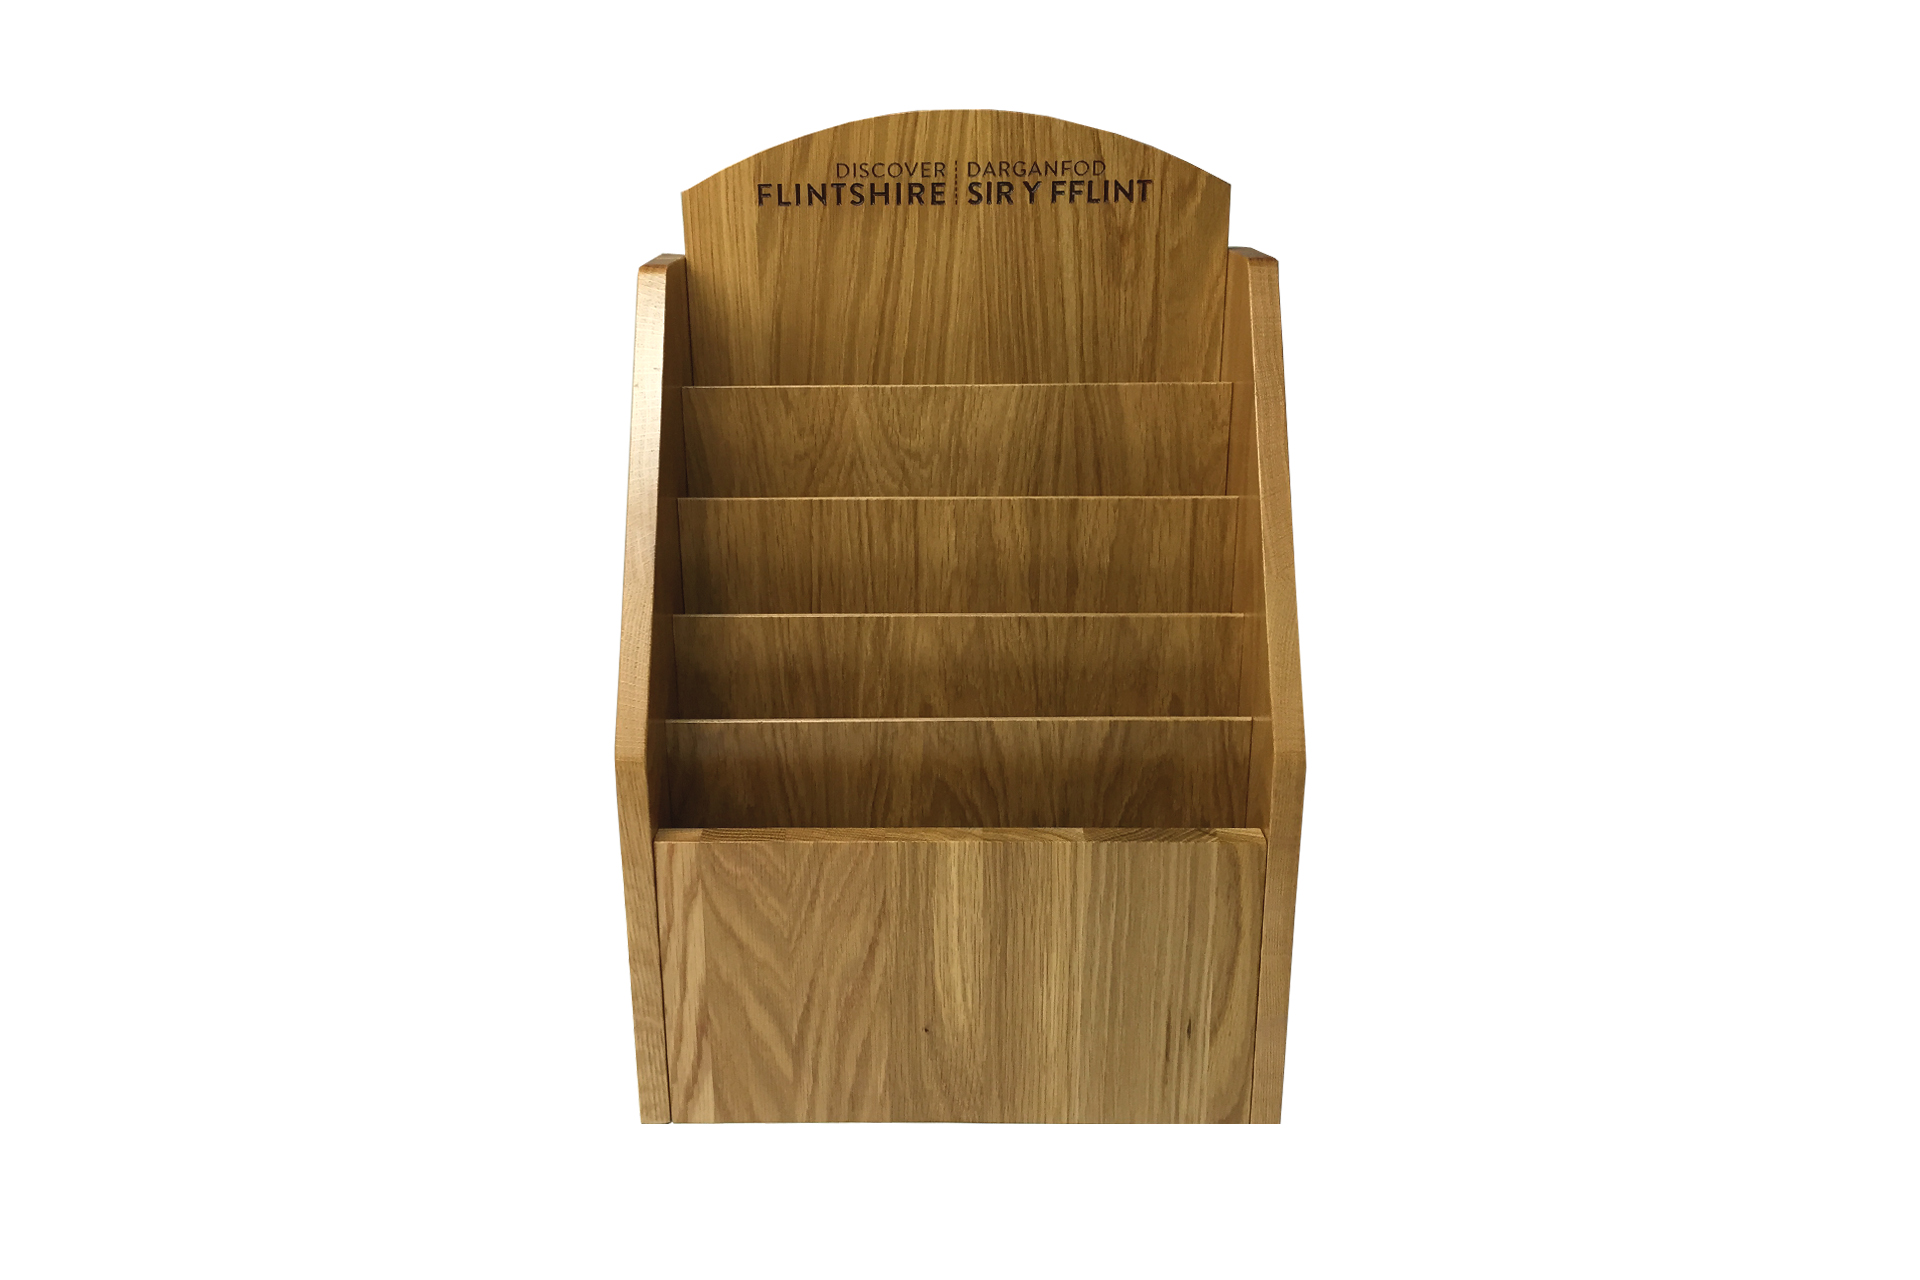 hand crafted wooden point of sale leaflet holder hotels and retail